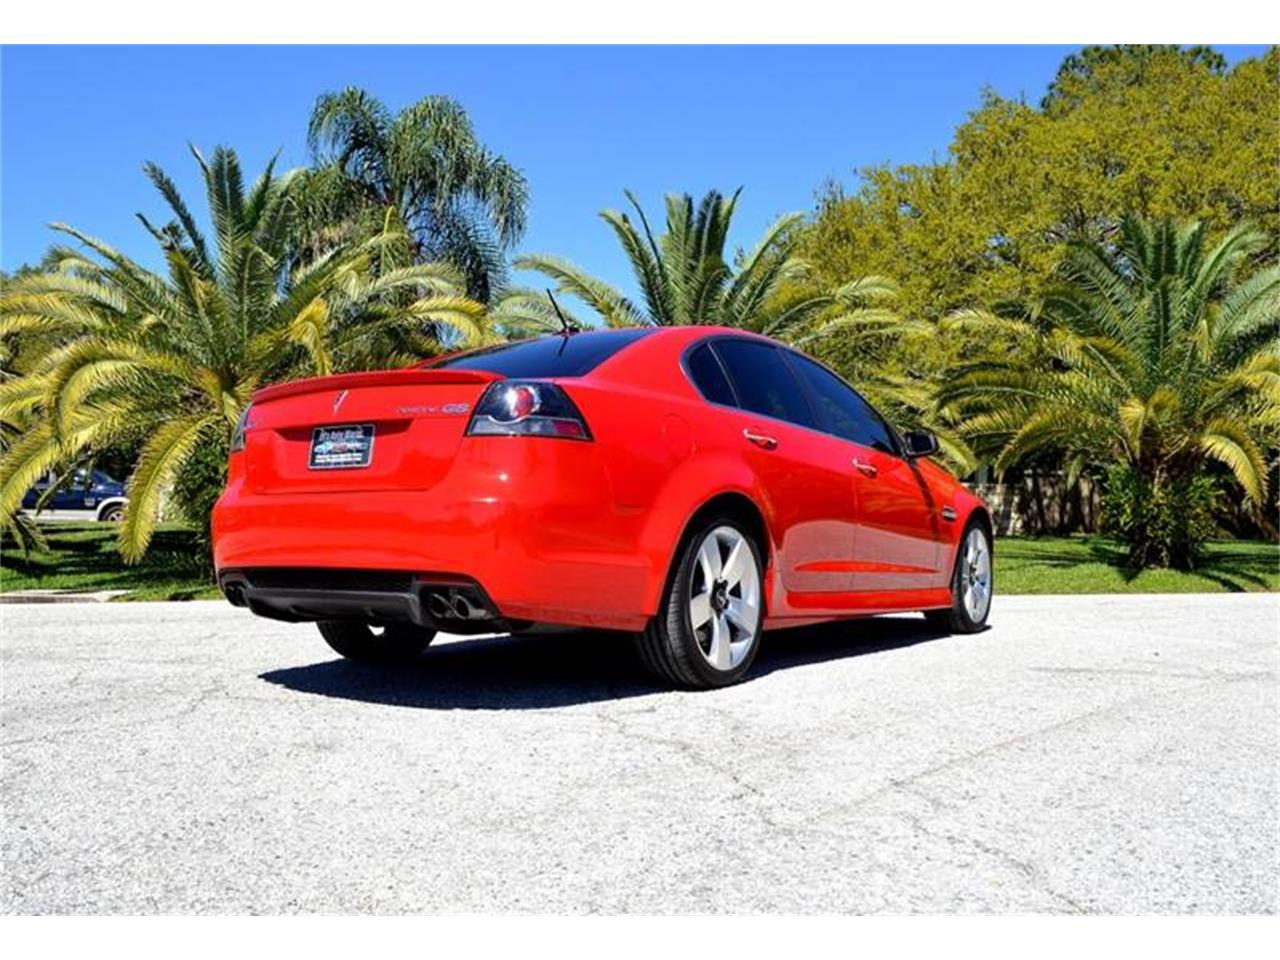 2009 Pontiac G8 for sale in Clearwater, FL – photo 12